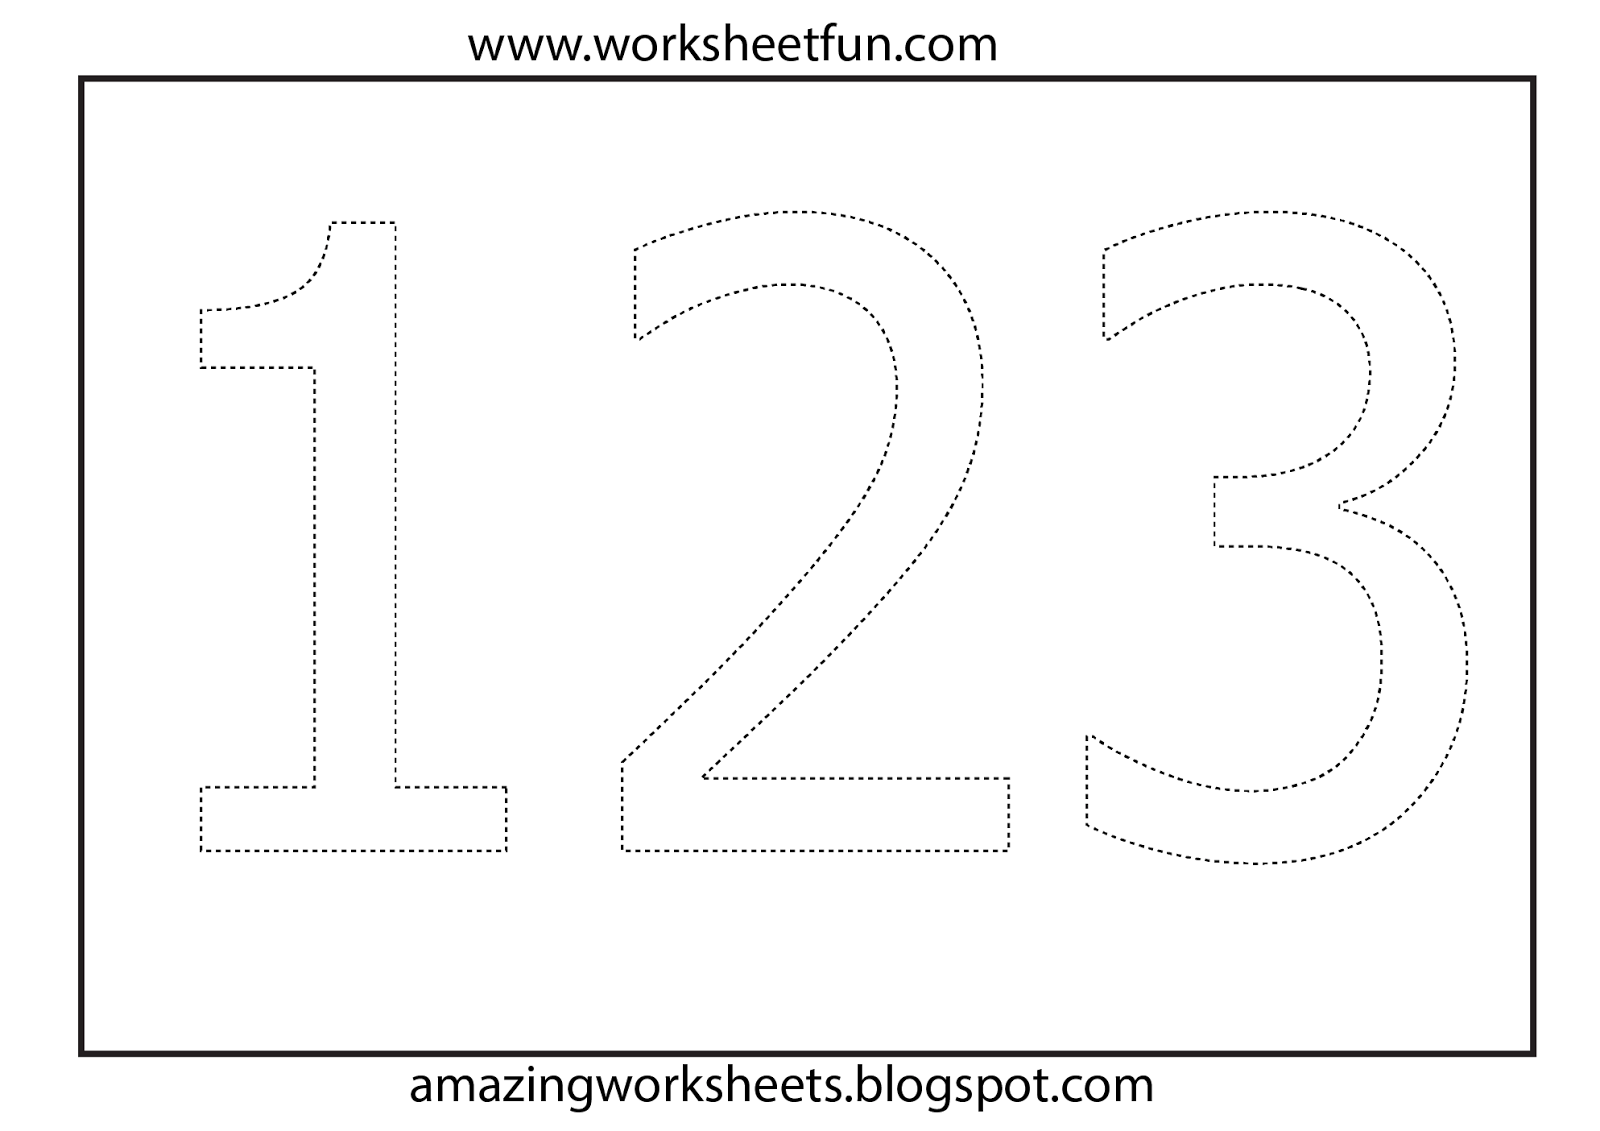 Worksheets For 2 Year Olds